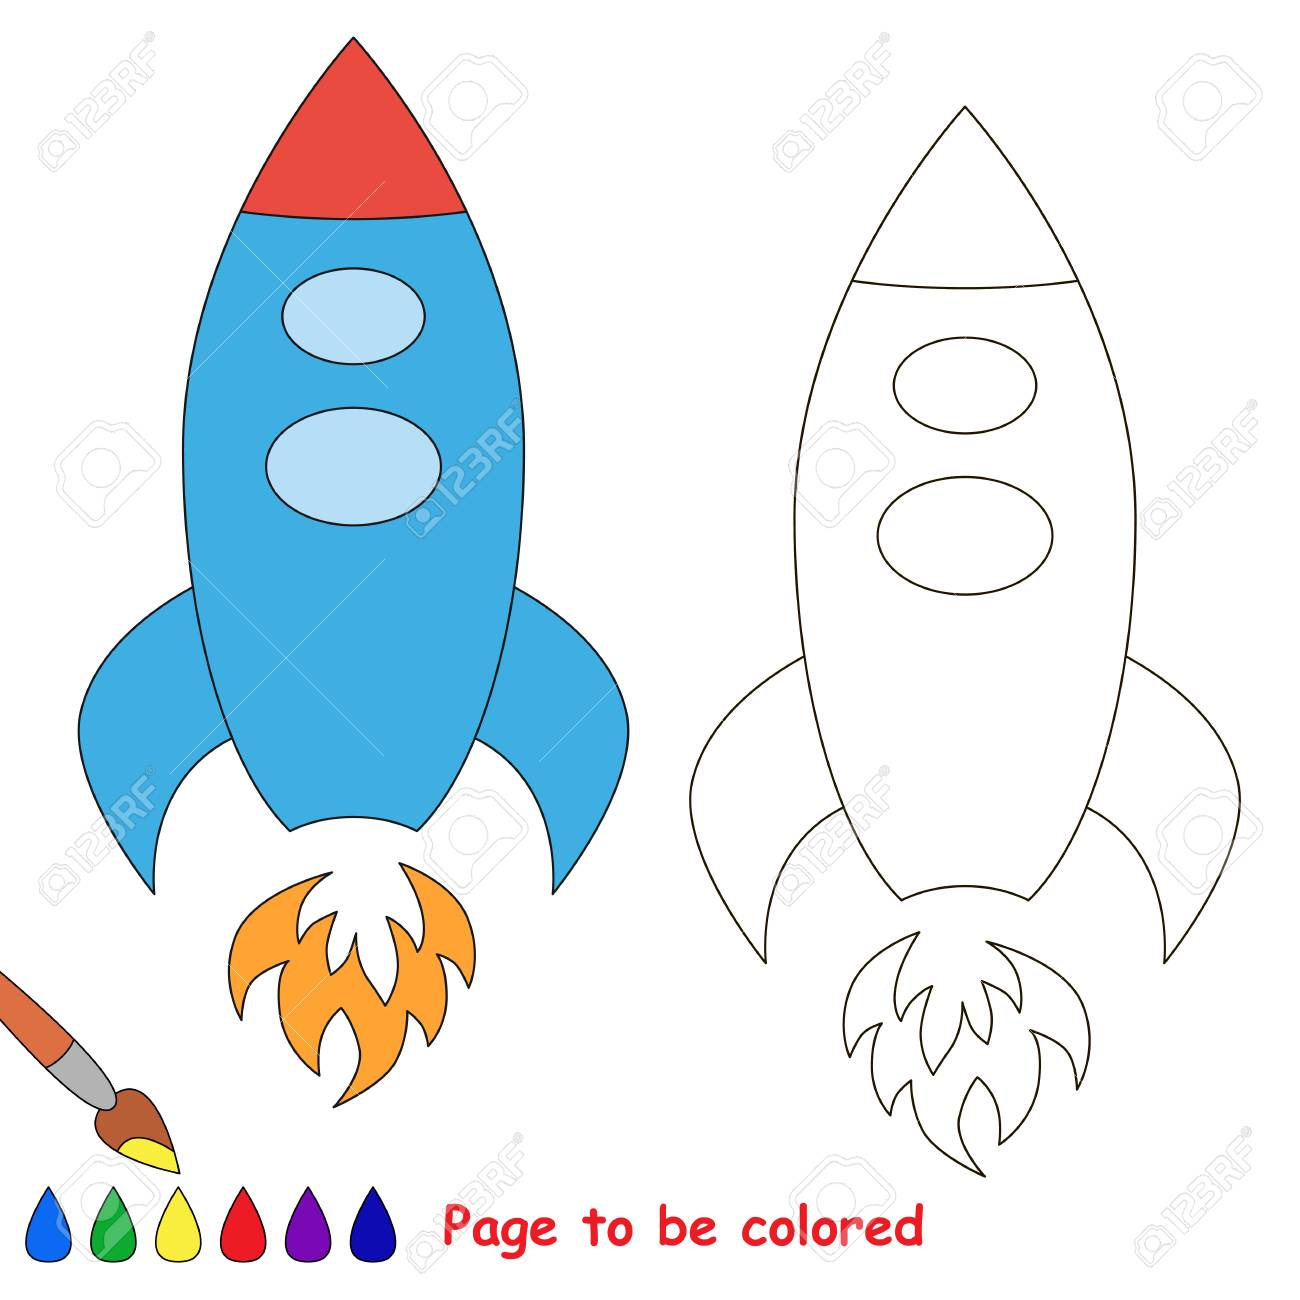 Rocket To Be Colored, The Coloring Book To Educate Preschool ...